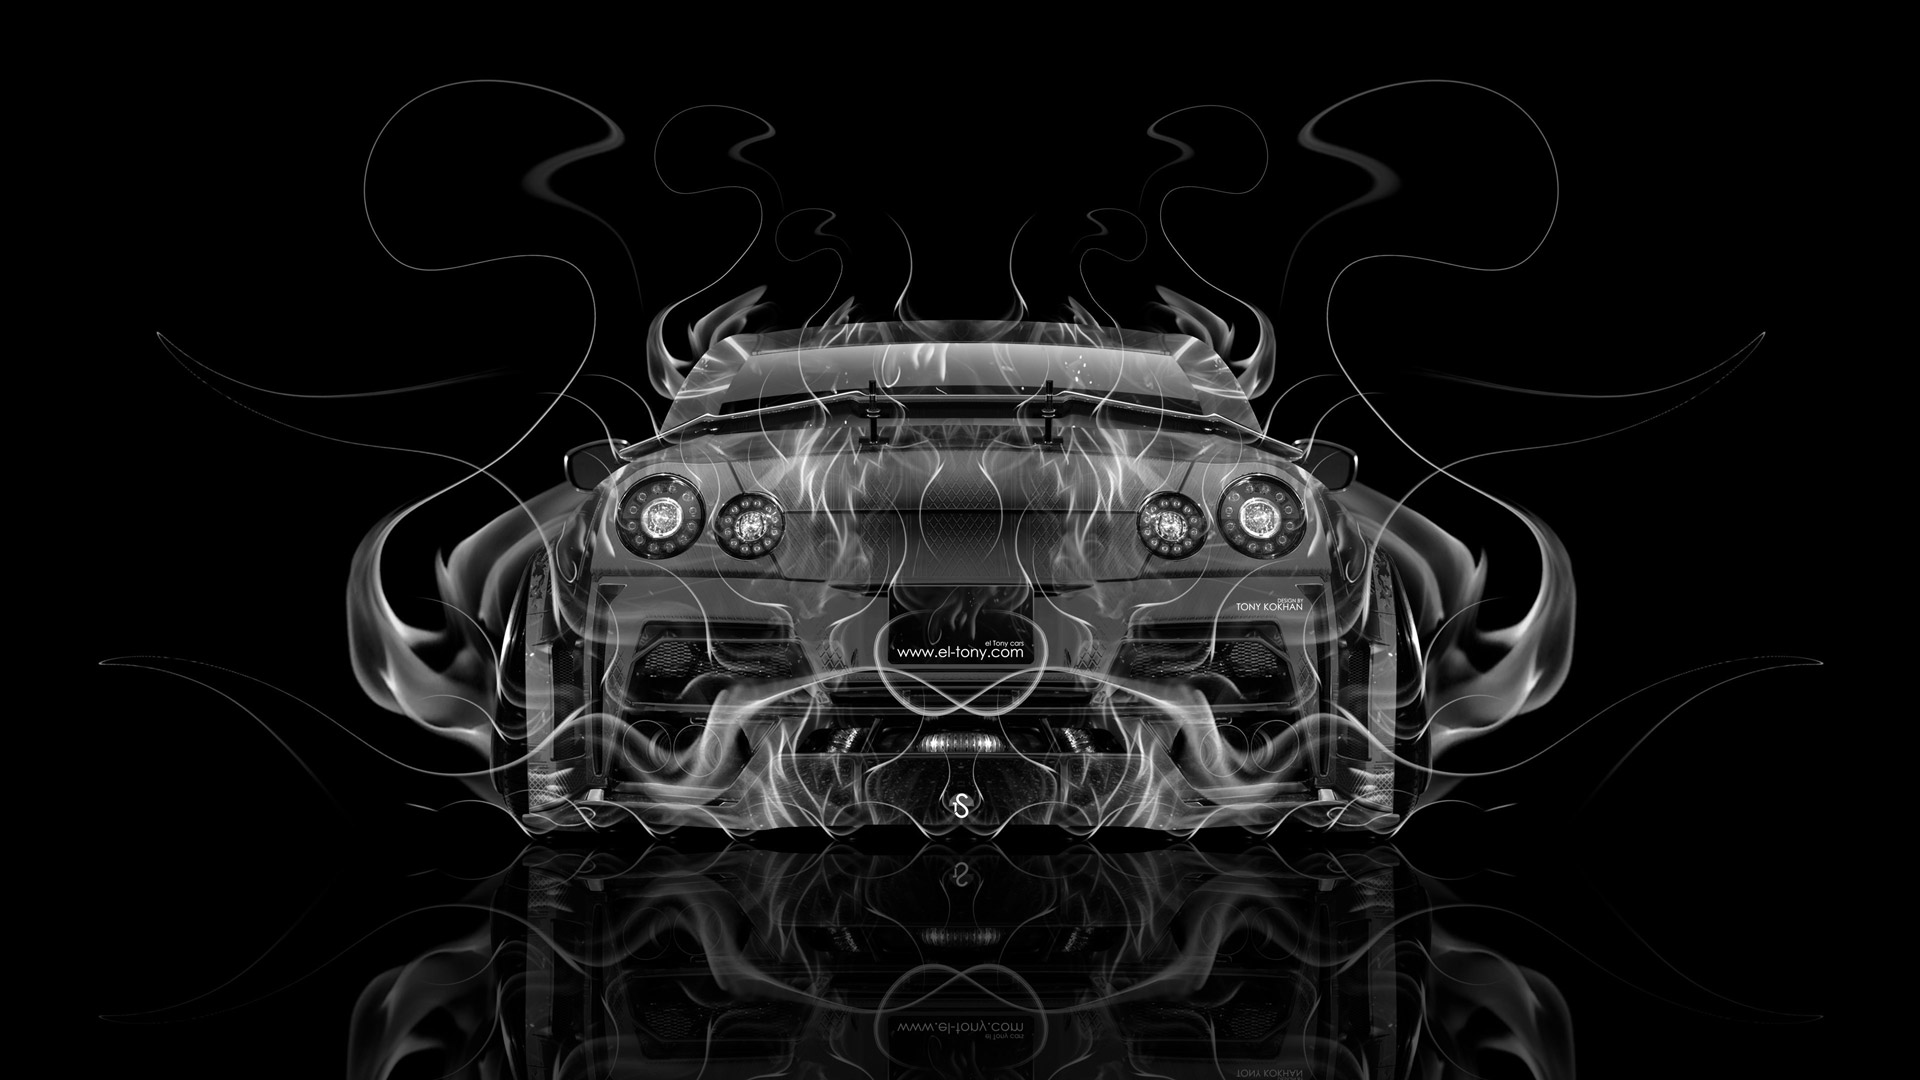 Genial Bugatti Vision Gran Turismo FrontUp Super Fire Flame Abstract Car  2016 Violet Black Colors HD Wallpapers Design By Tony Kokhan Www.el Tony.com Imagu2026